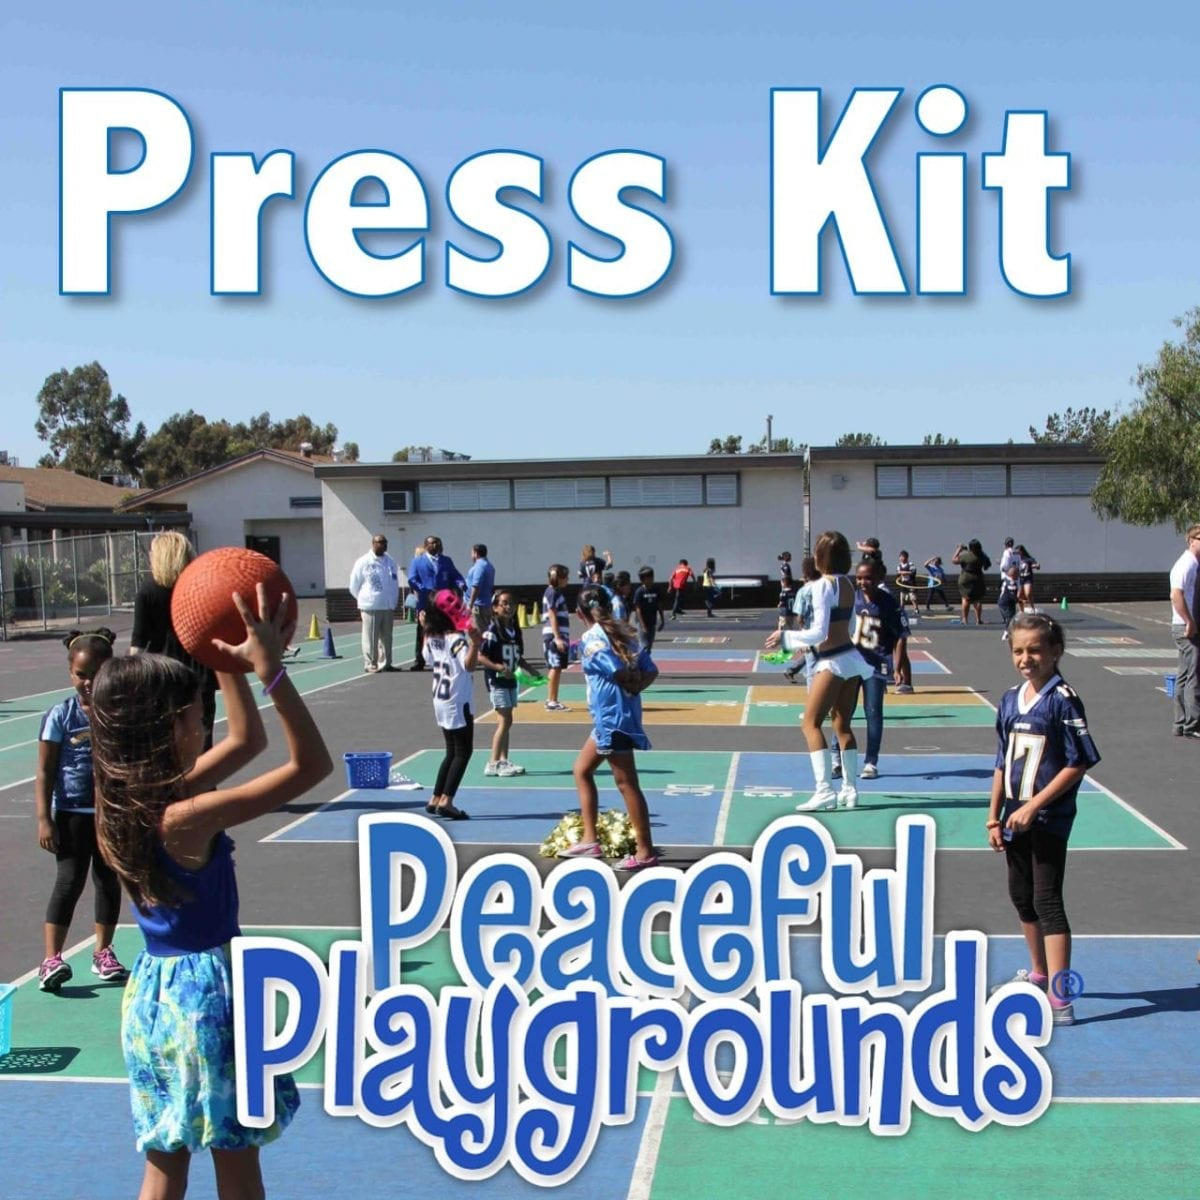 Press Kit Peaceful Playgrounds